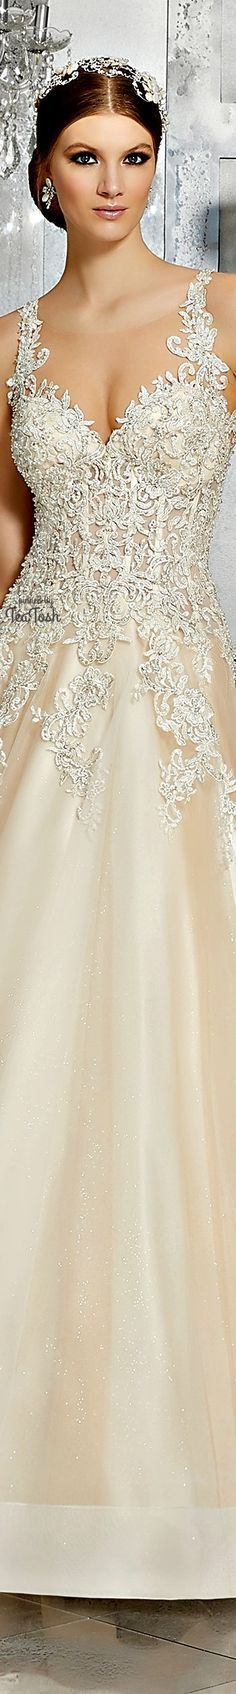 ❇Téa Tosh❇ (Front) Mahala Wedding Dress Beautiful Wedding Gowns, Glamorous Wedding, Beautiful Bride, Romantic Princess, Princess Wedding, Older Bride, Weeding Dress, Here Comes The Bride, Pretty Woman